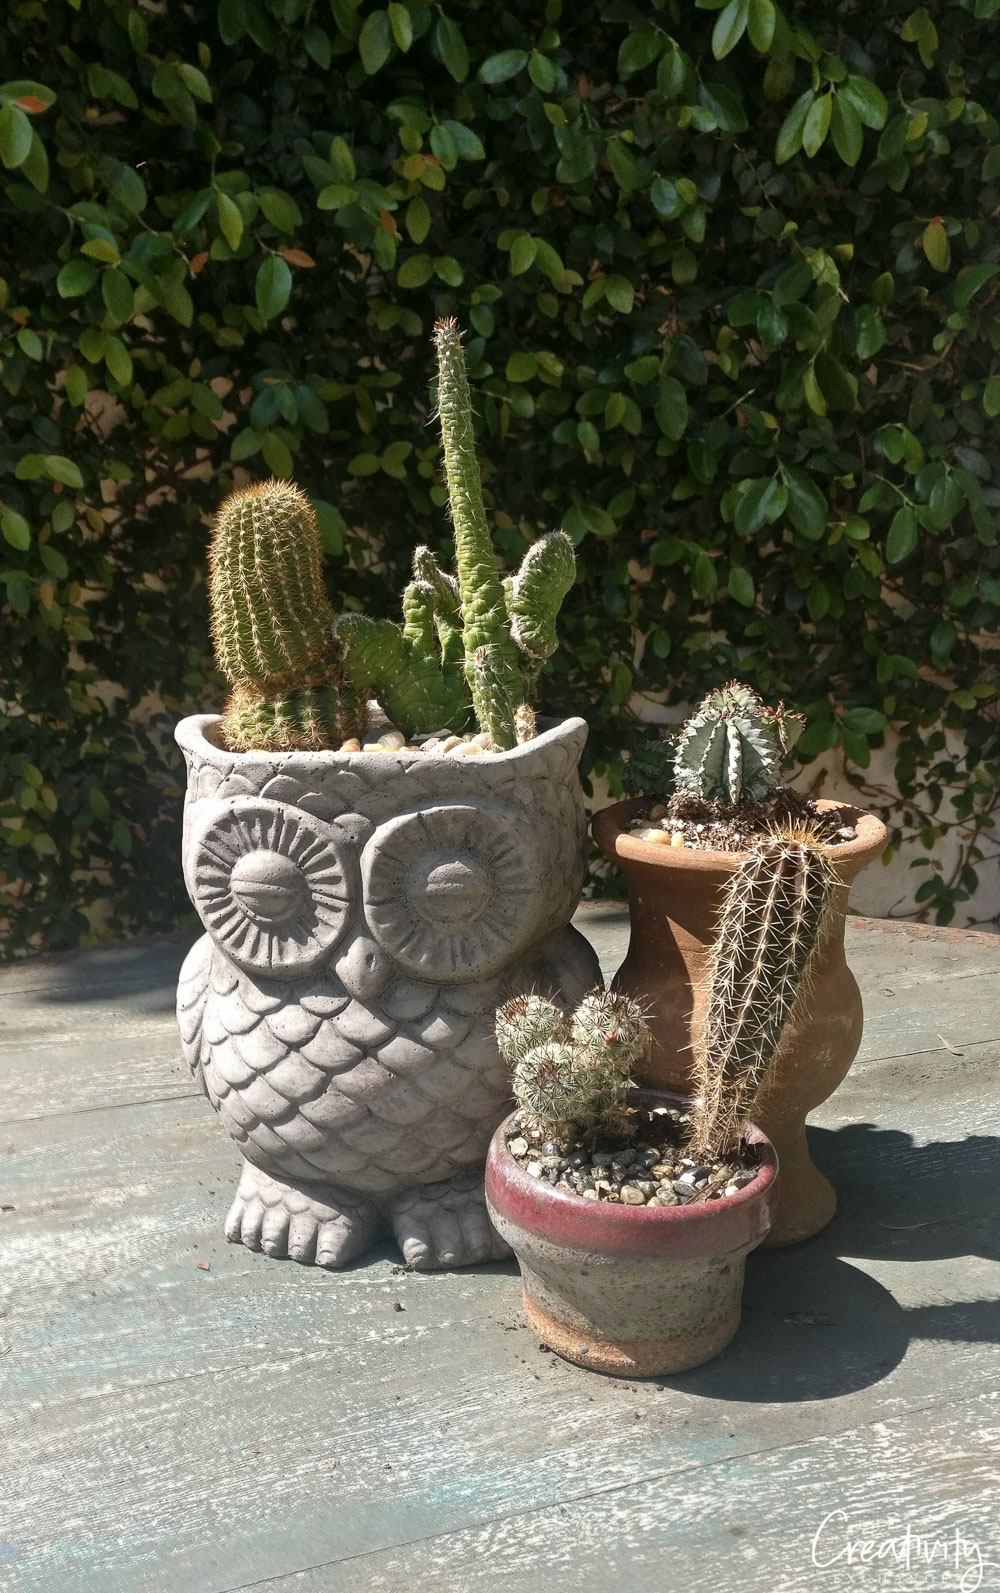 Cute plant containers